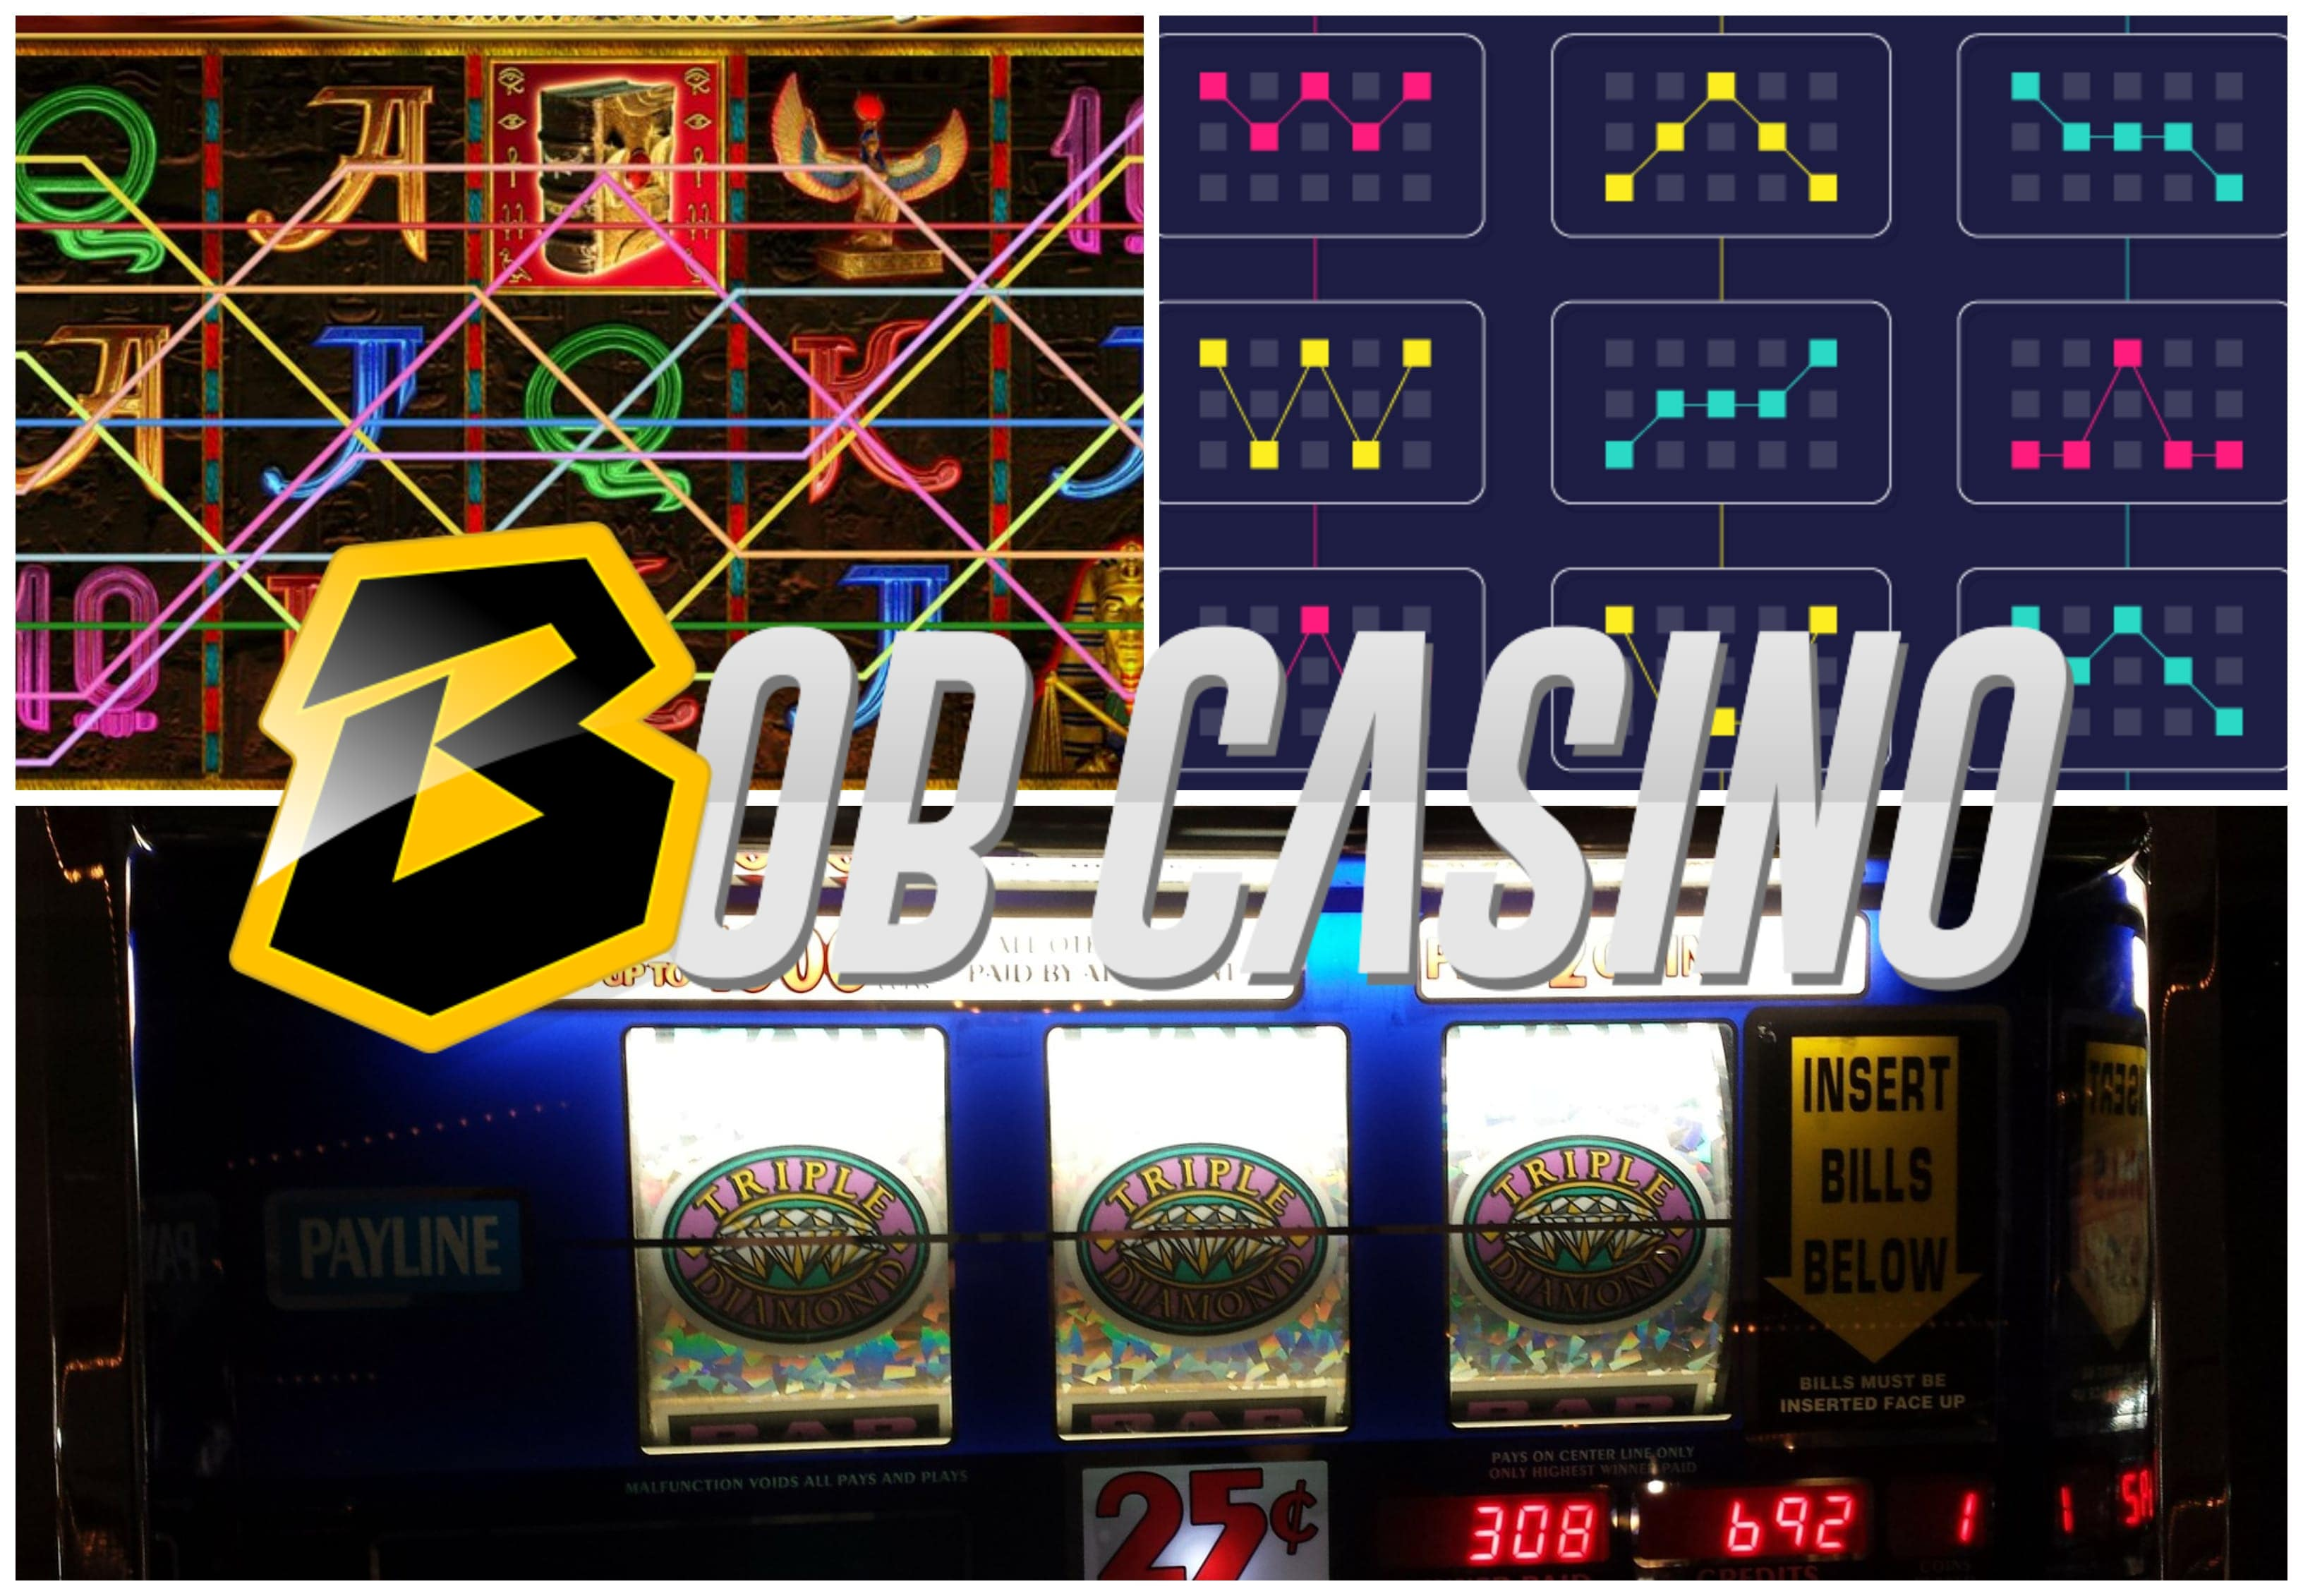 Slot machine paylines and paytable guide from Bob Casino.